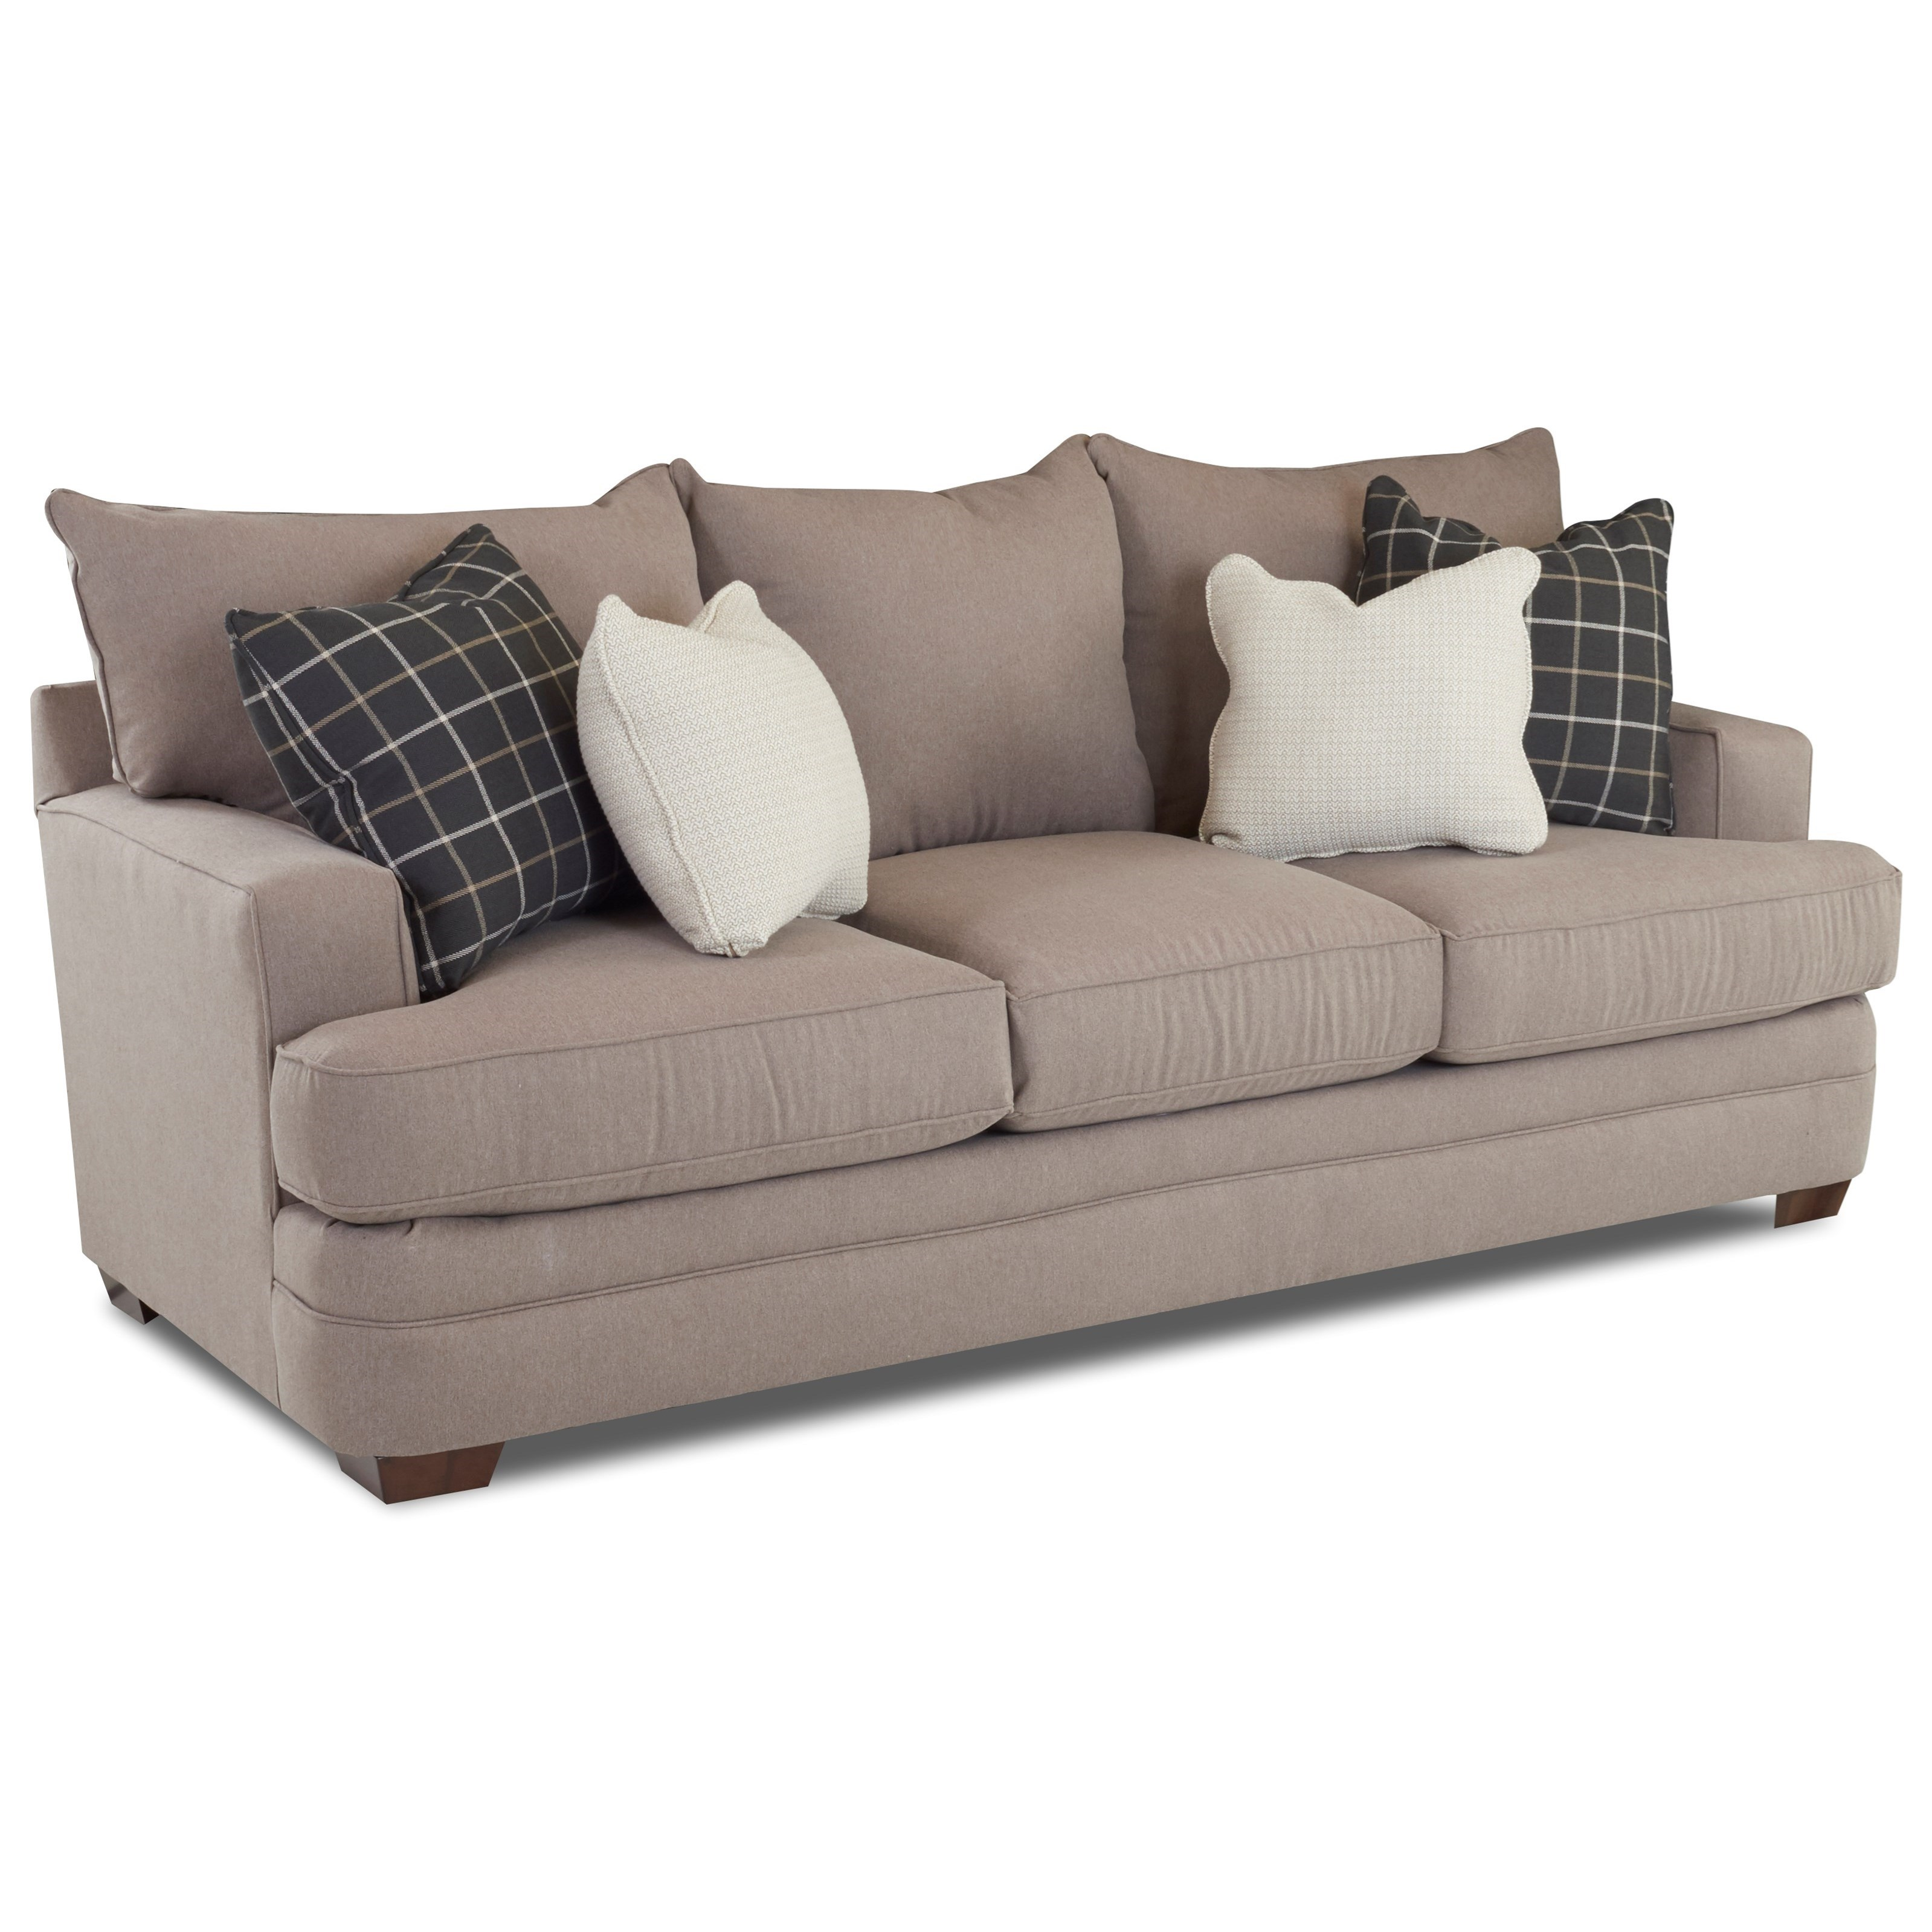 chadwick sofa chesterfield pull out bed klaussner casual with square track arms